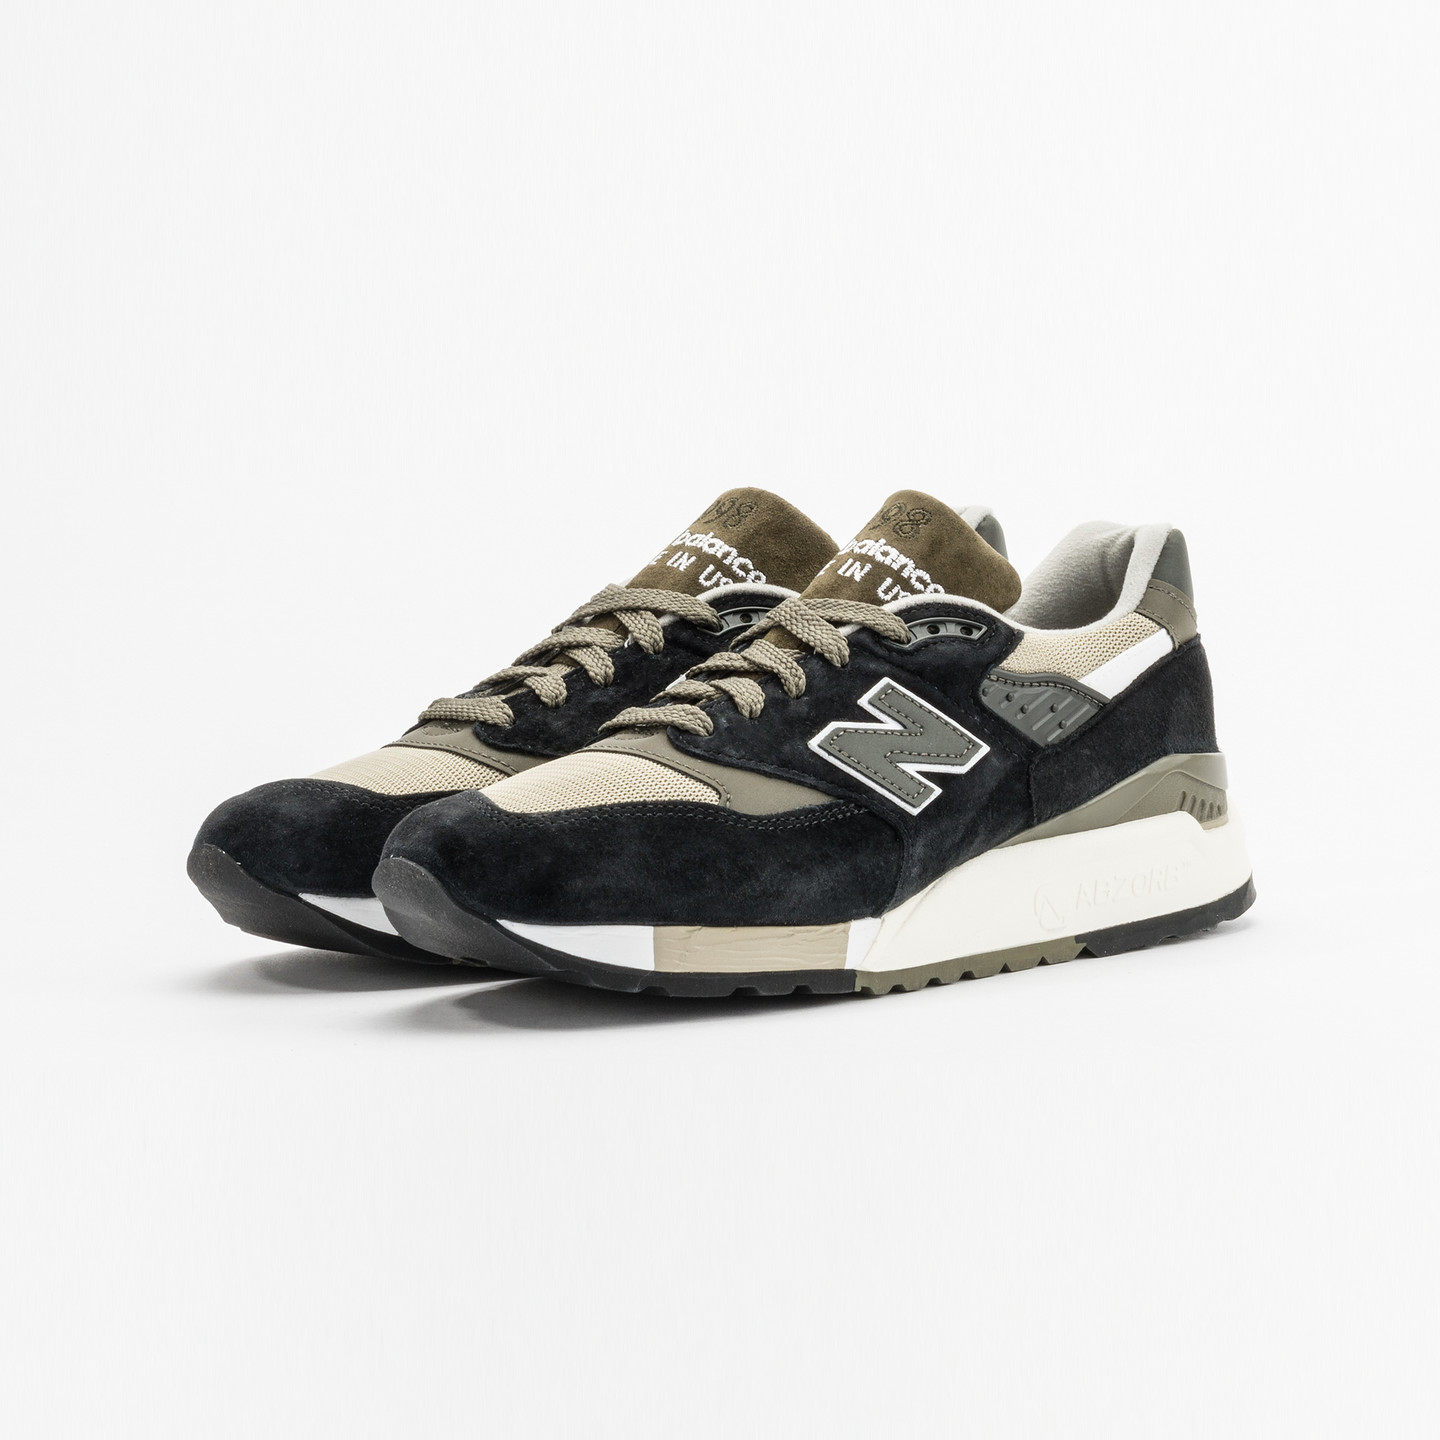 New Balance M998 Made in USA Olive / Black M998CTR-45.5